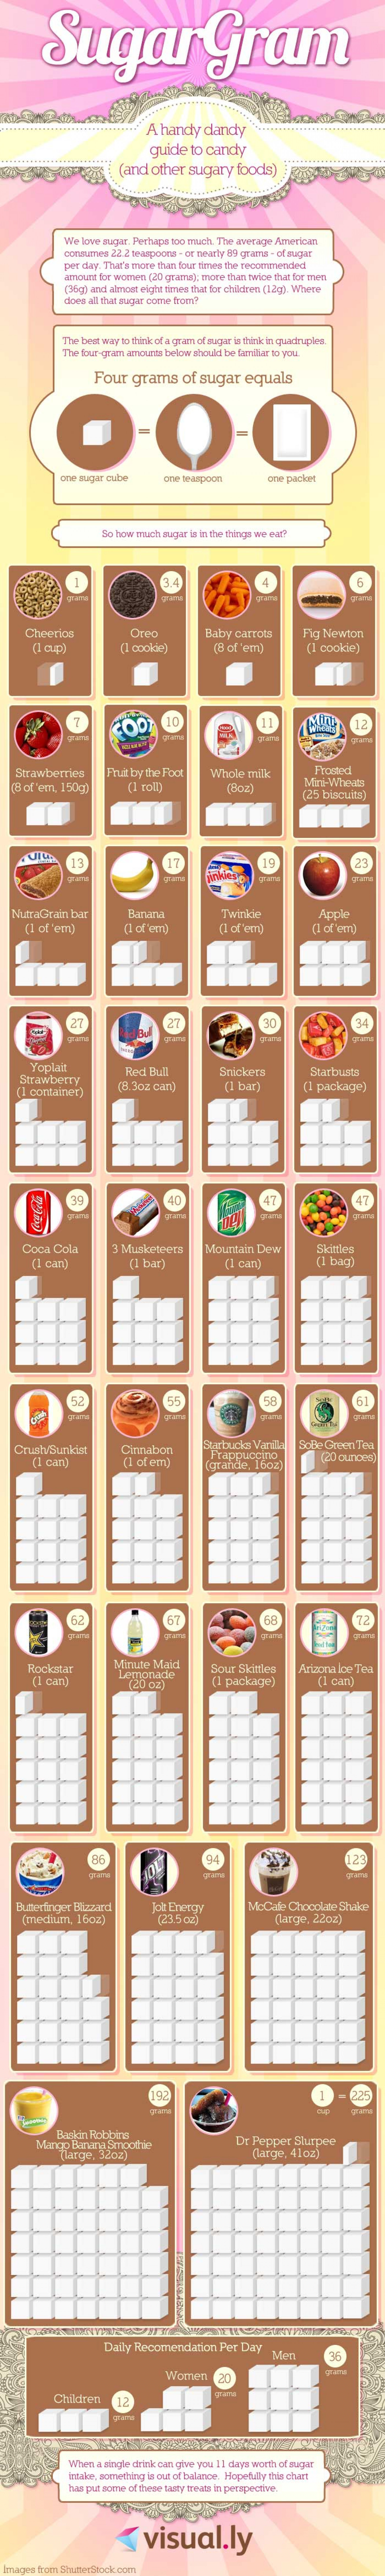 SugarGram Infographic